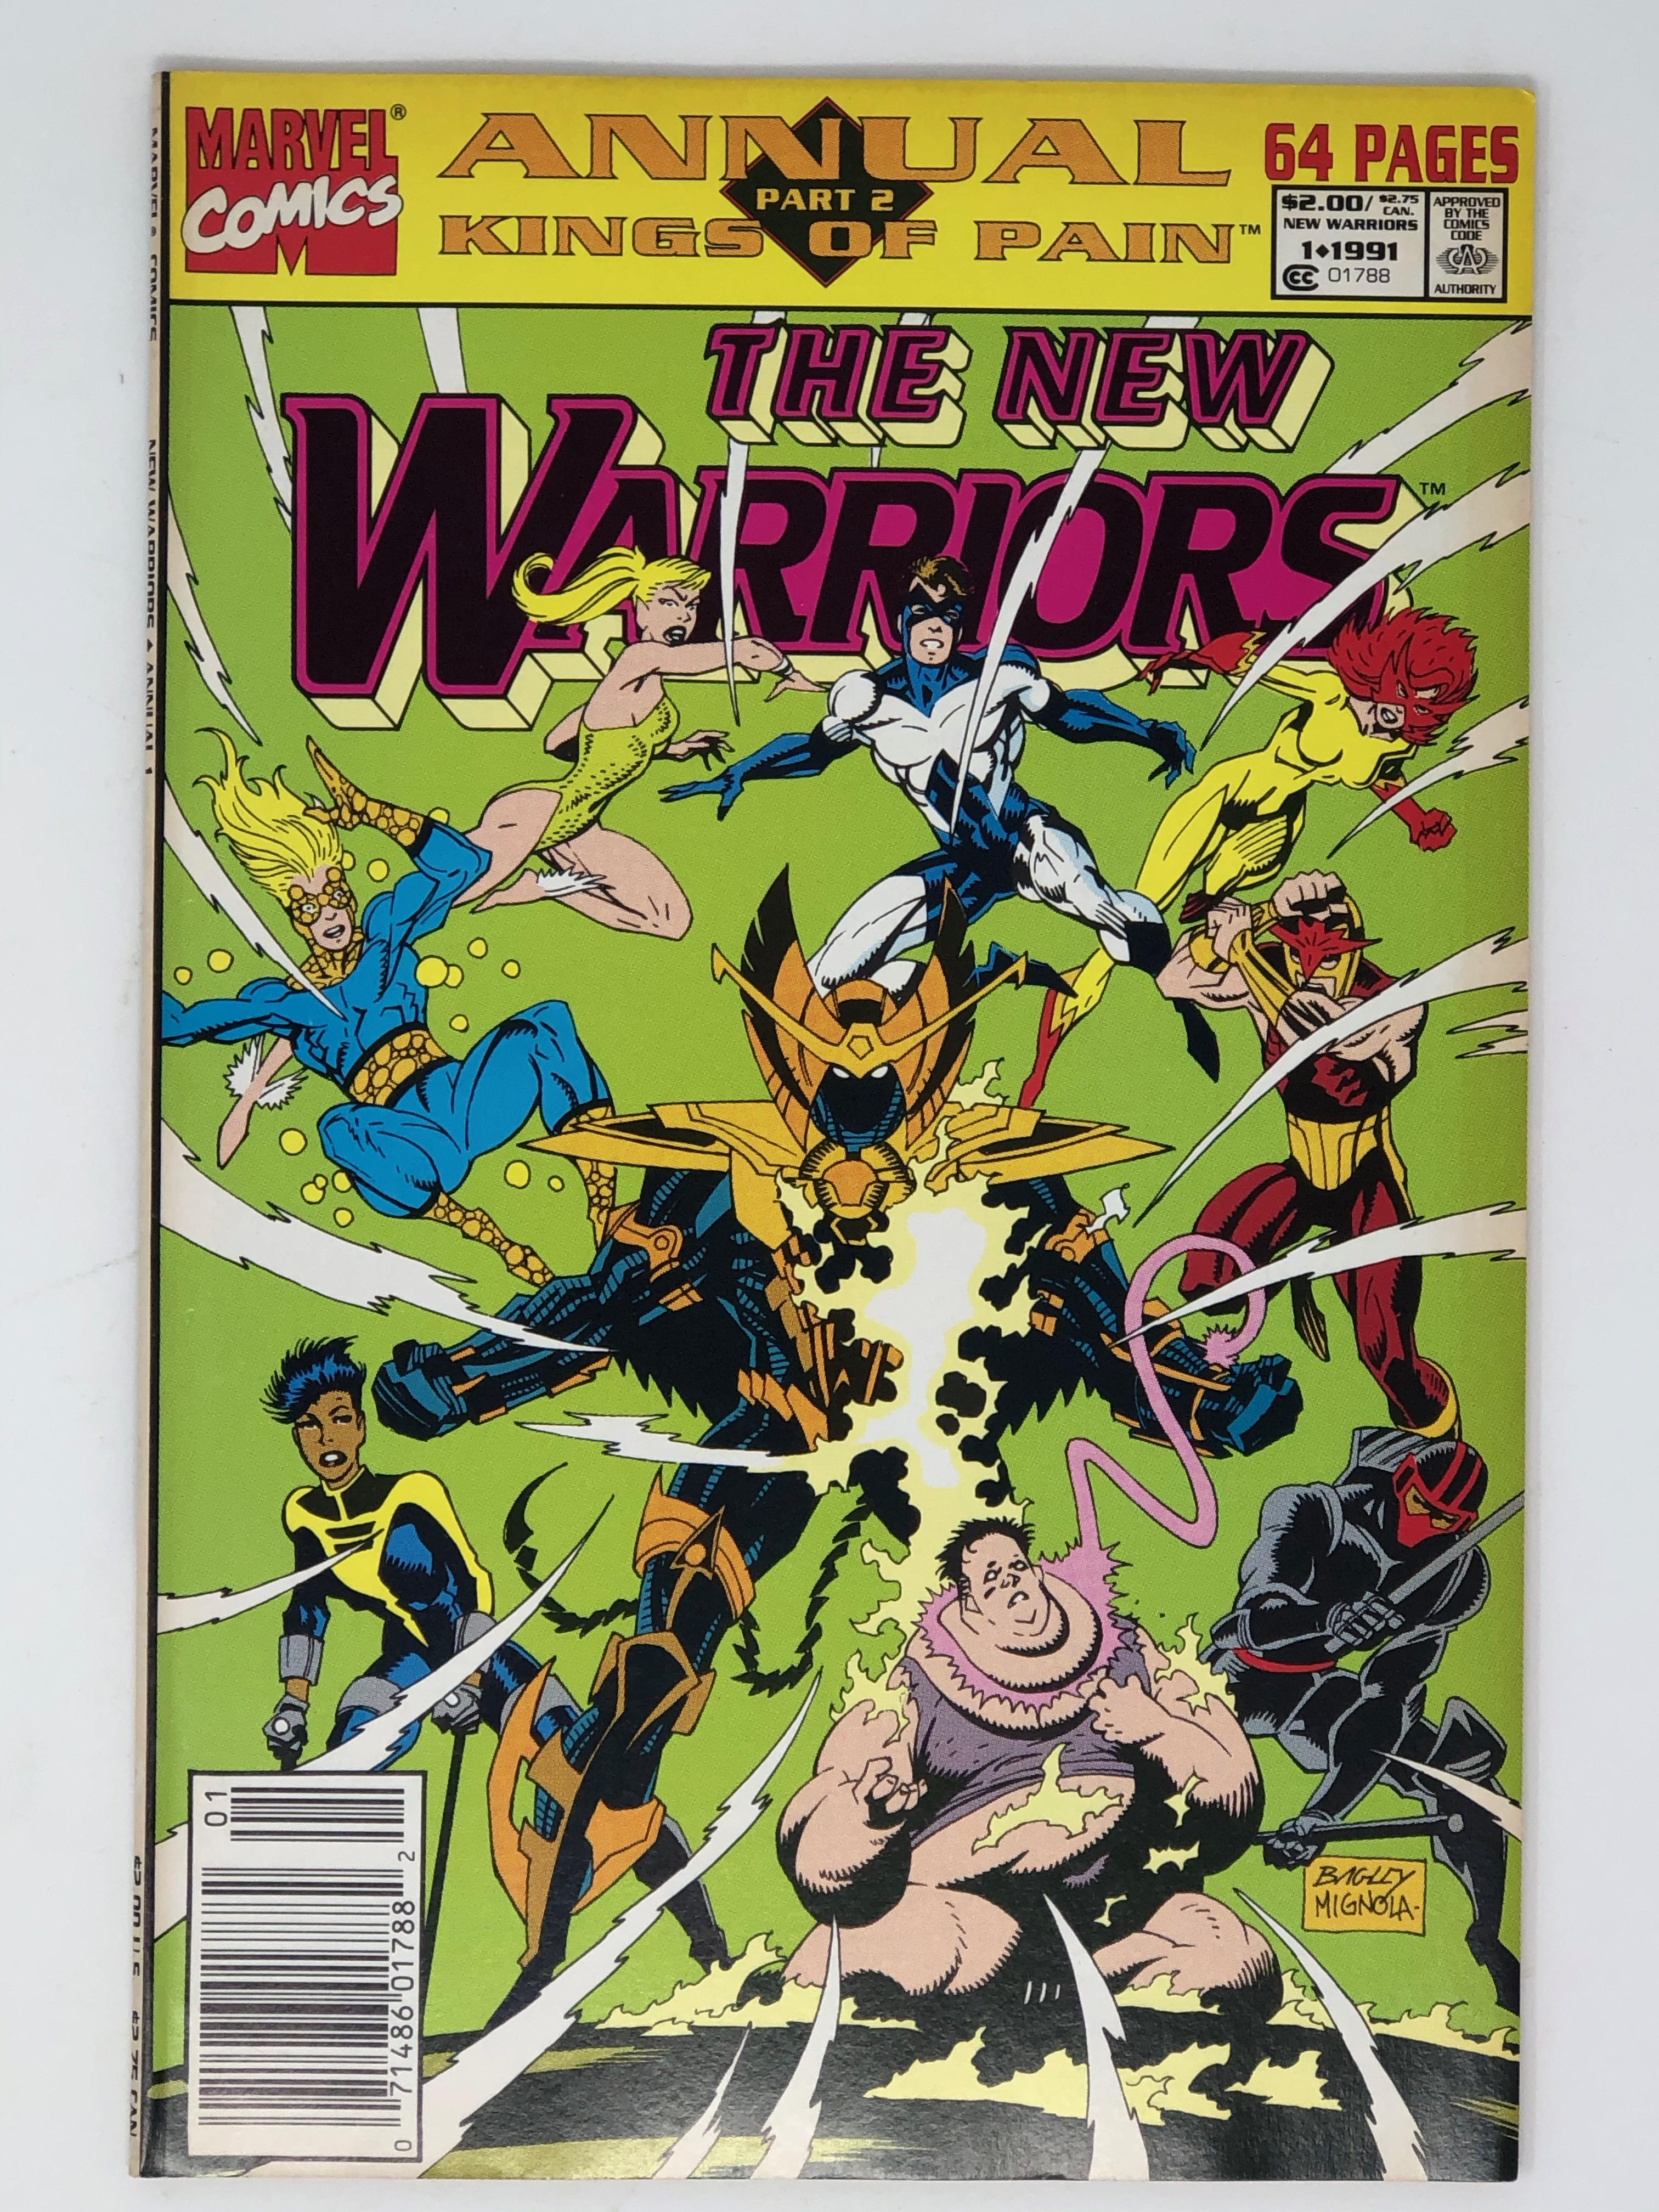 MARVEL, THE NEW WARRIORS Part 2